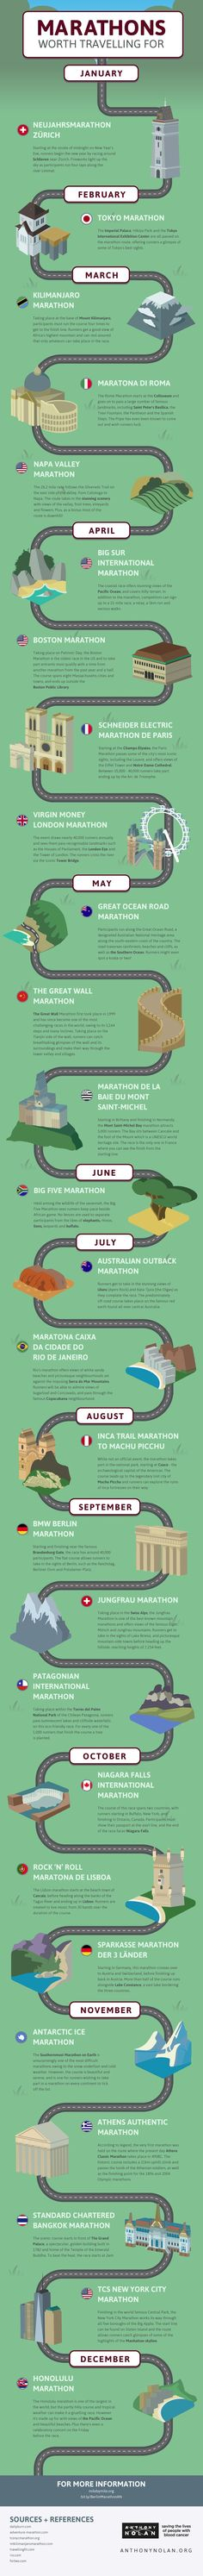 Marathons worth travelling for – running for Anthony Nolan worldwide #infographic #Marathons #Health